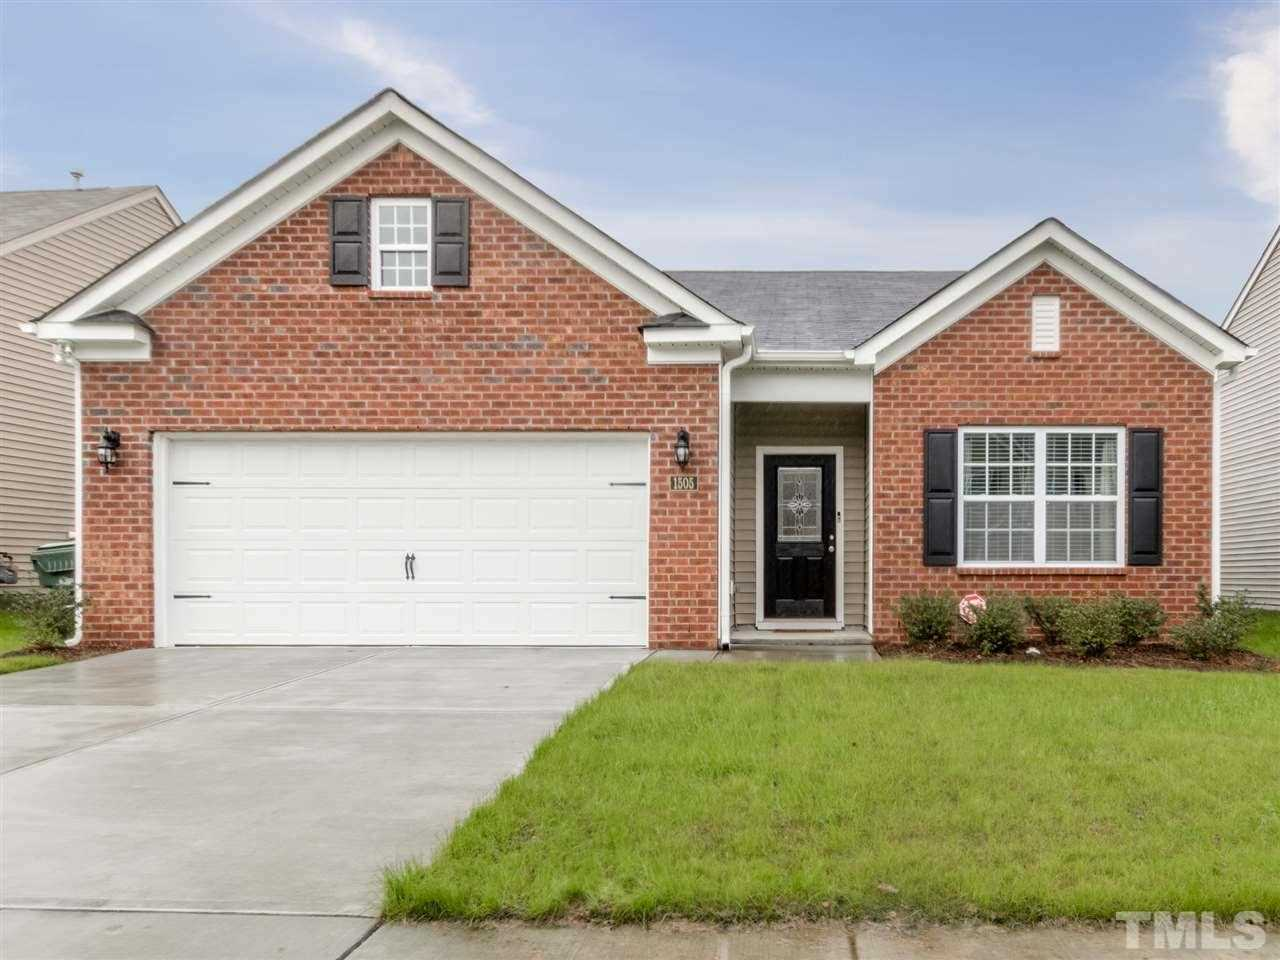 000 Confidential Ave. Raleigh, NC 27610 | MLS 2227291 Photo 1